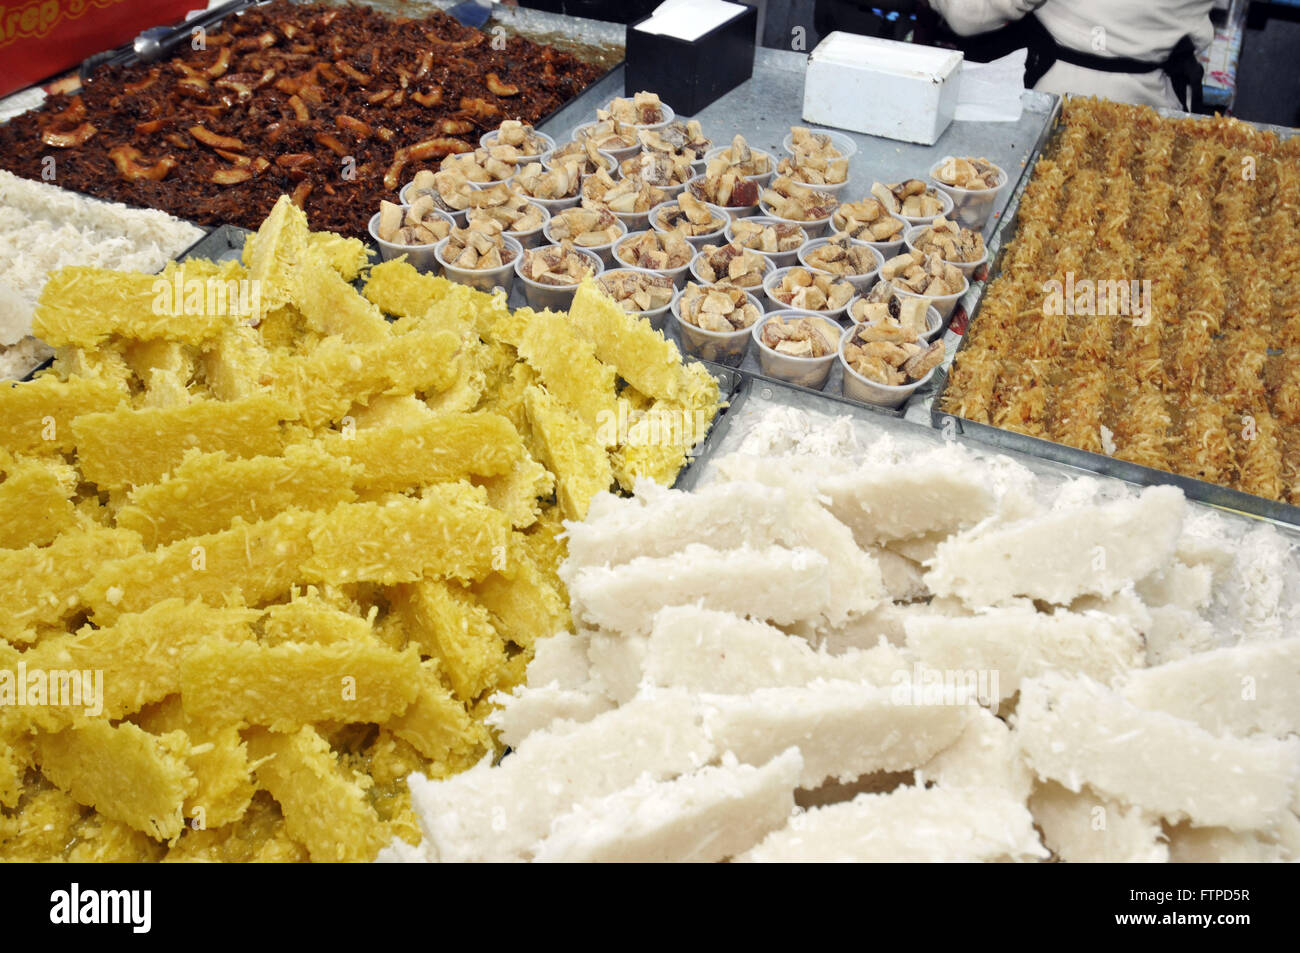 Delicacies for sale in Arraial do Ze mess in the city of Bueno Brandao - South of Minas Gerais - Stock Image